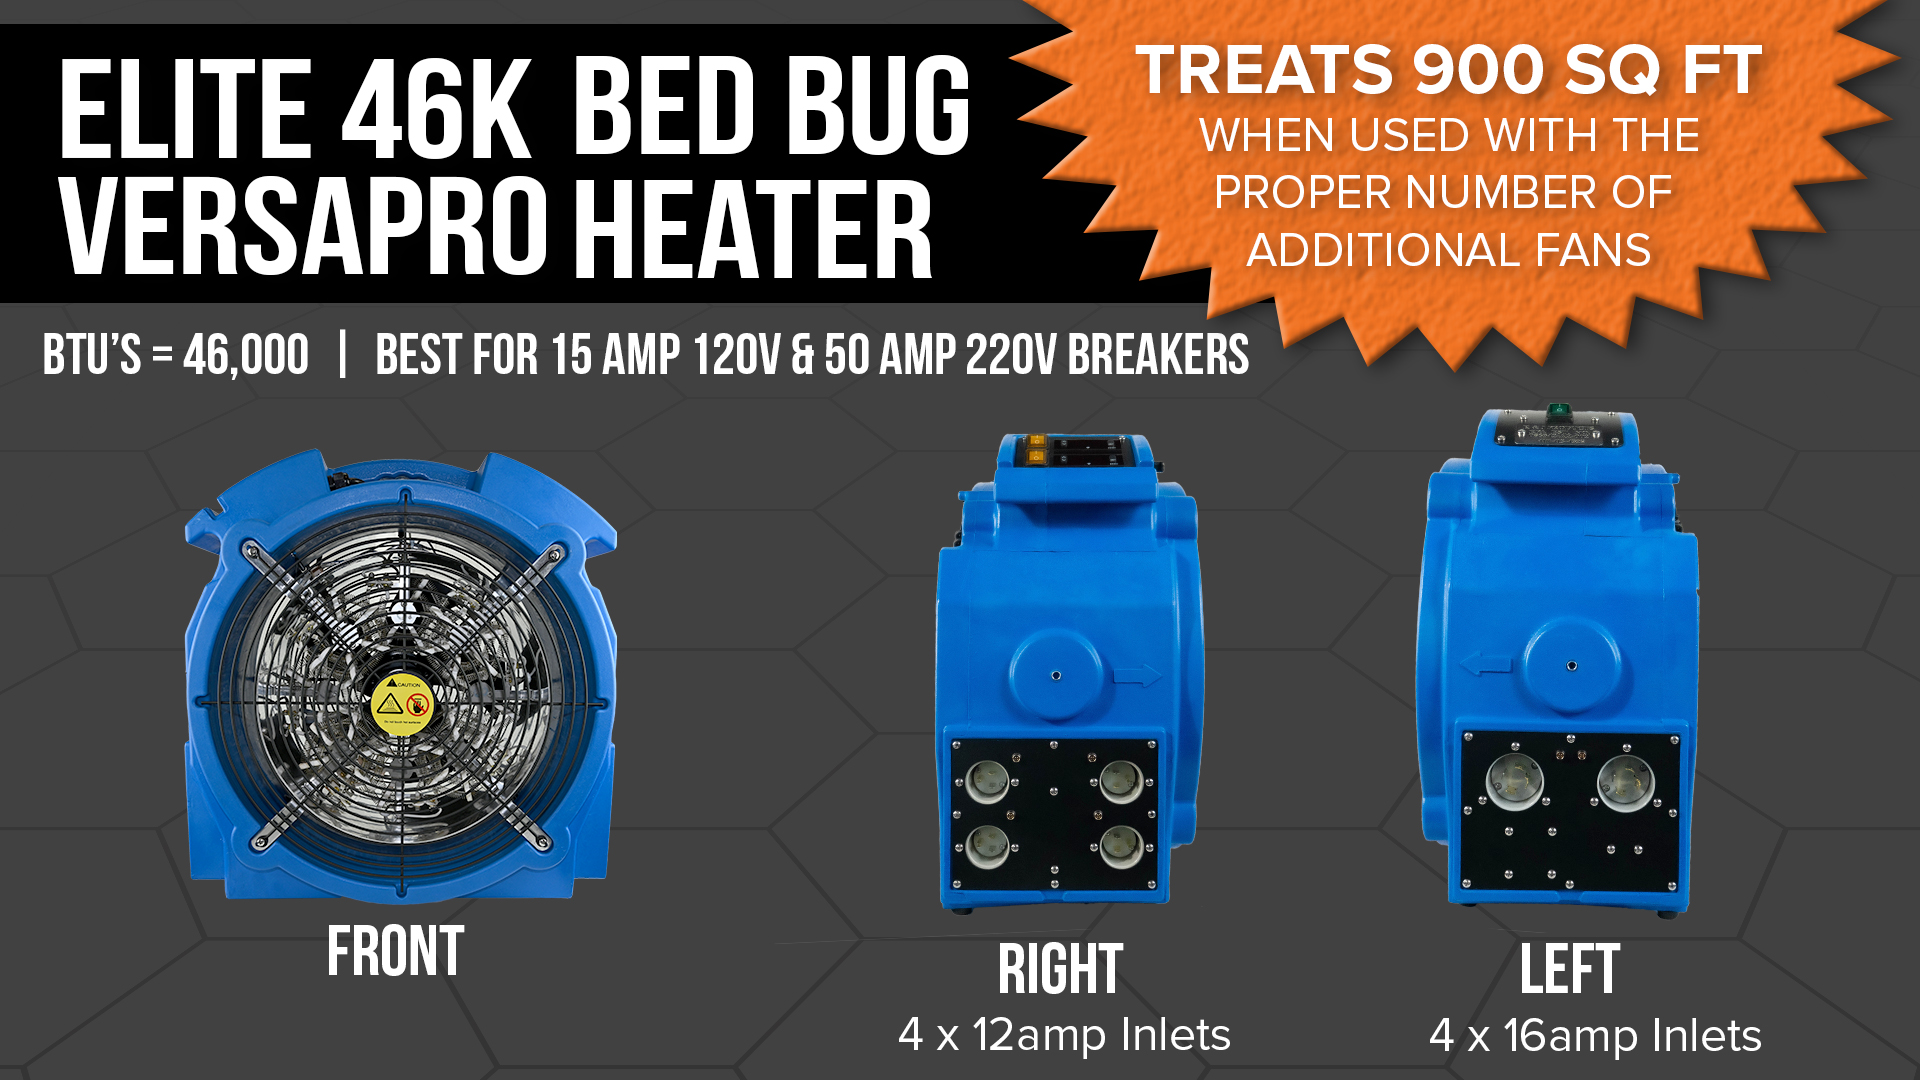 Versapro Bed Bug Heater Specs